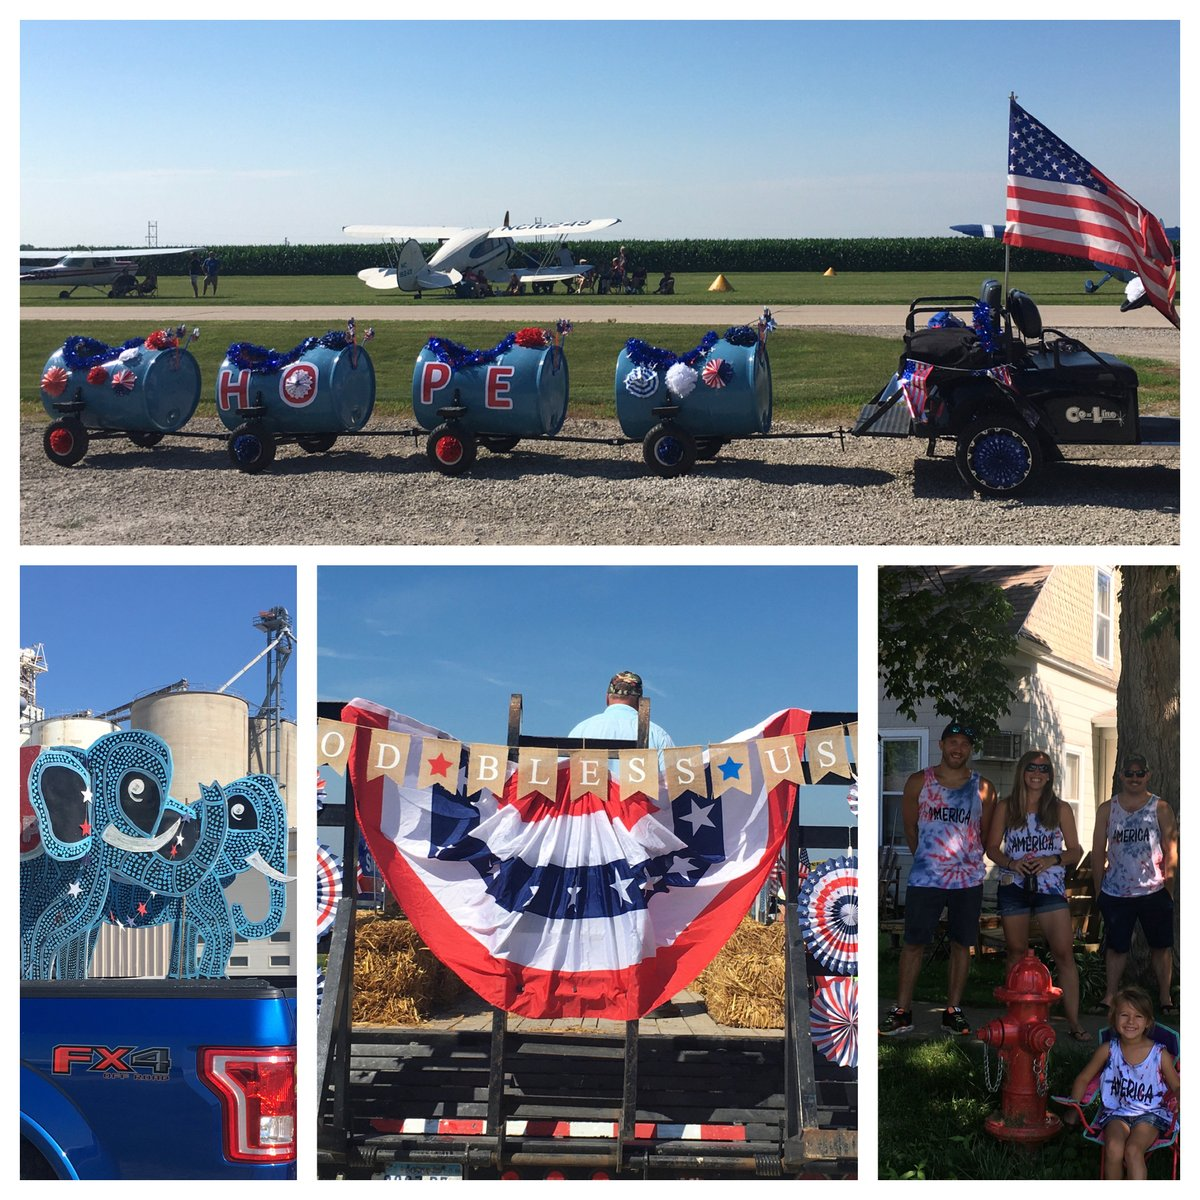 """Sully 4th of July parade:  designer train, cool art work, back of GOP float """"God Bless the USA"""" and home made tie-dyed shirts! Awesome to be there, even with no handouts and physical distancing. We are close in spirit & united in gratitude. #IA02"""